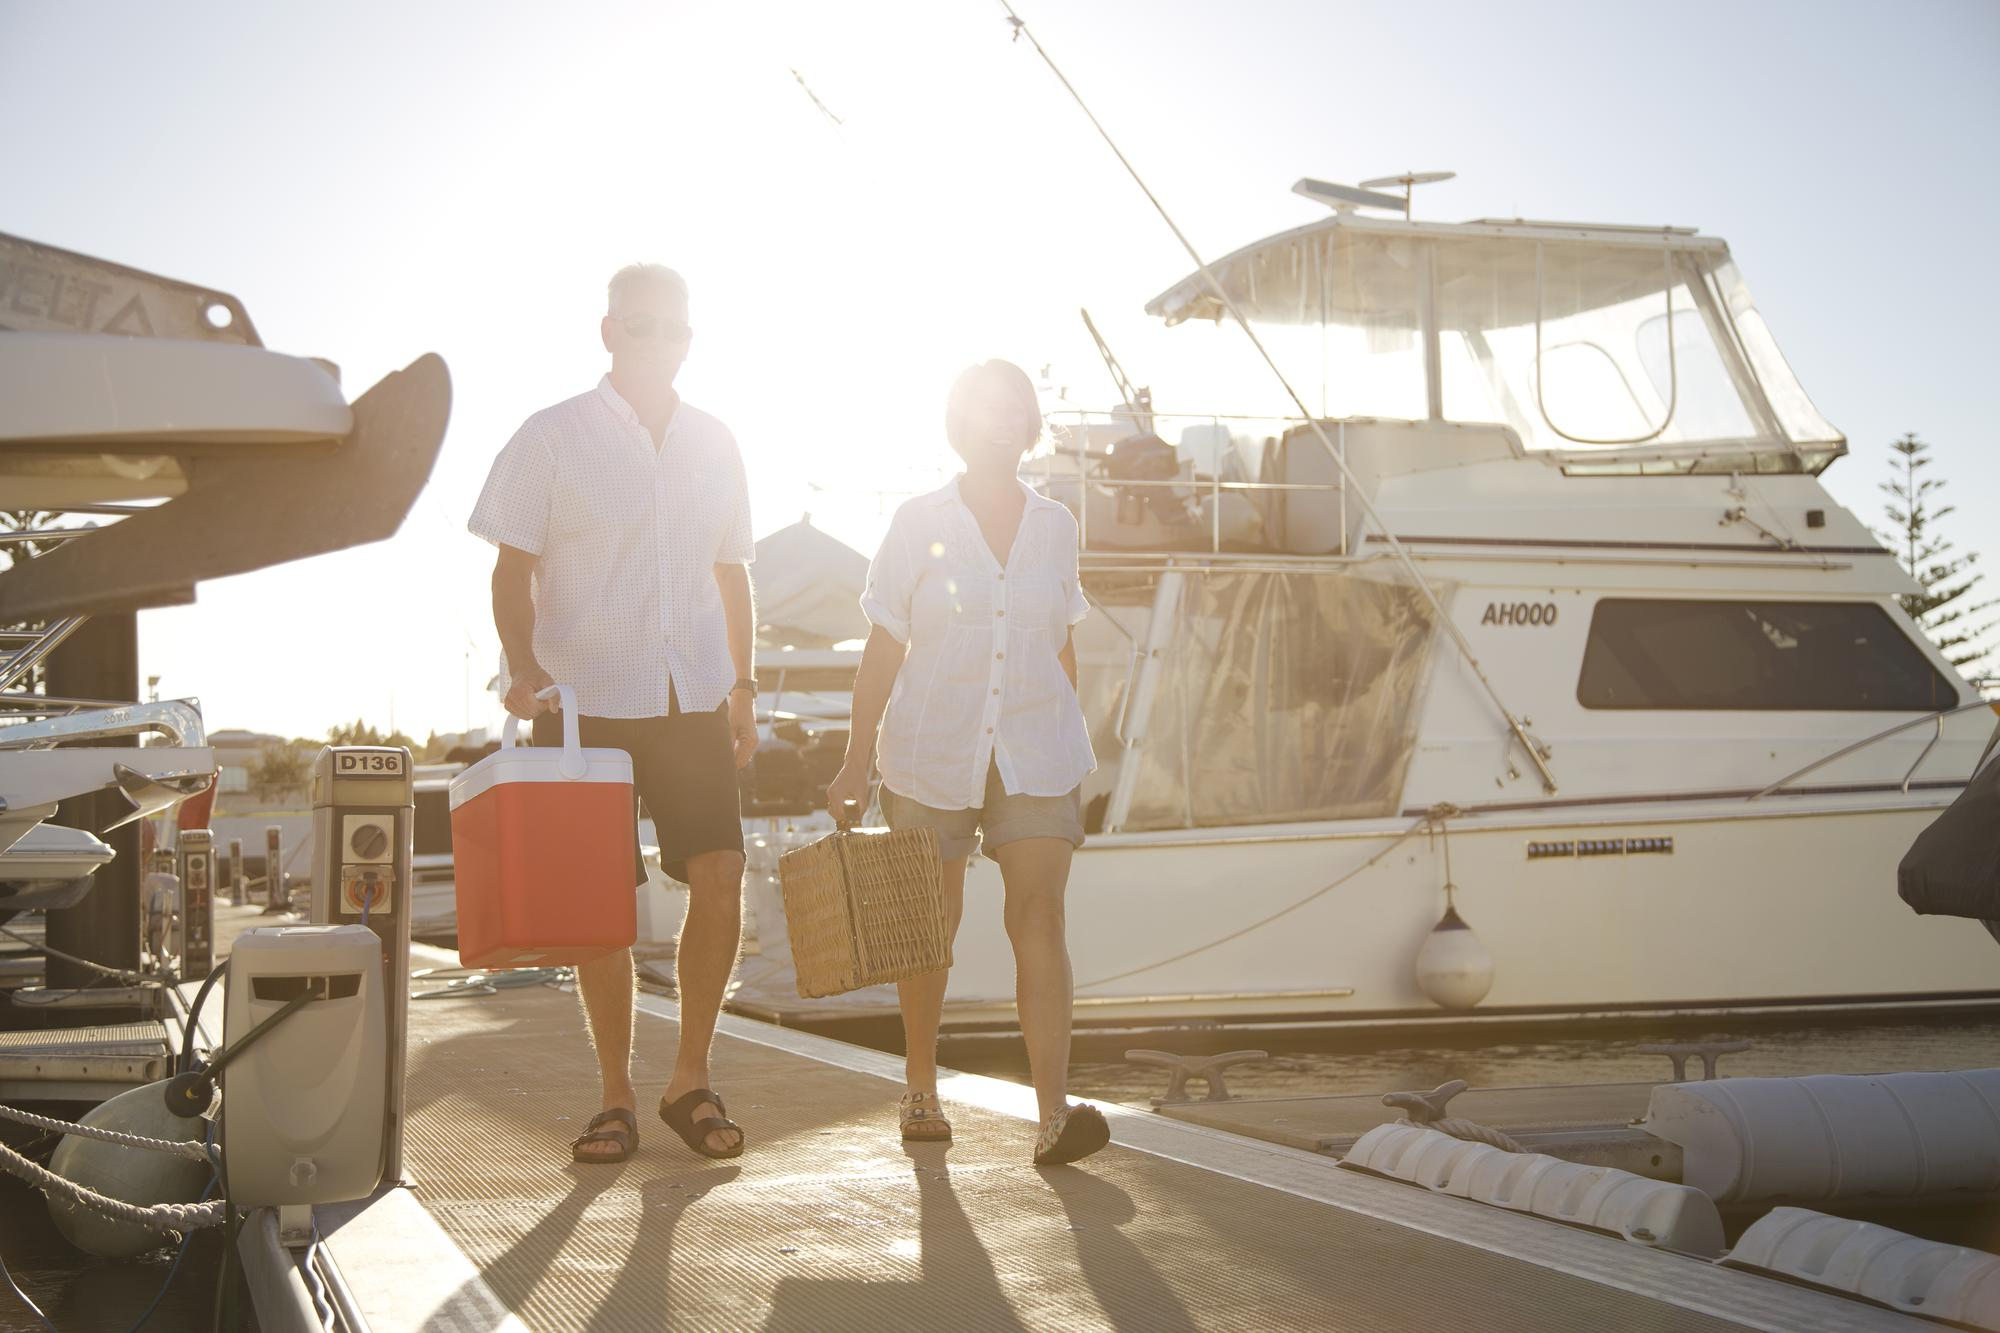 Live the coastal lifestyle at a world-class marina